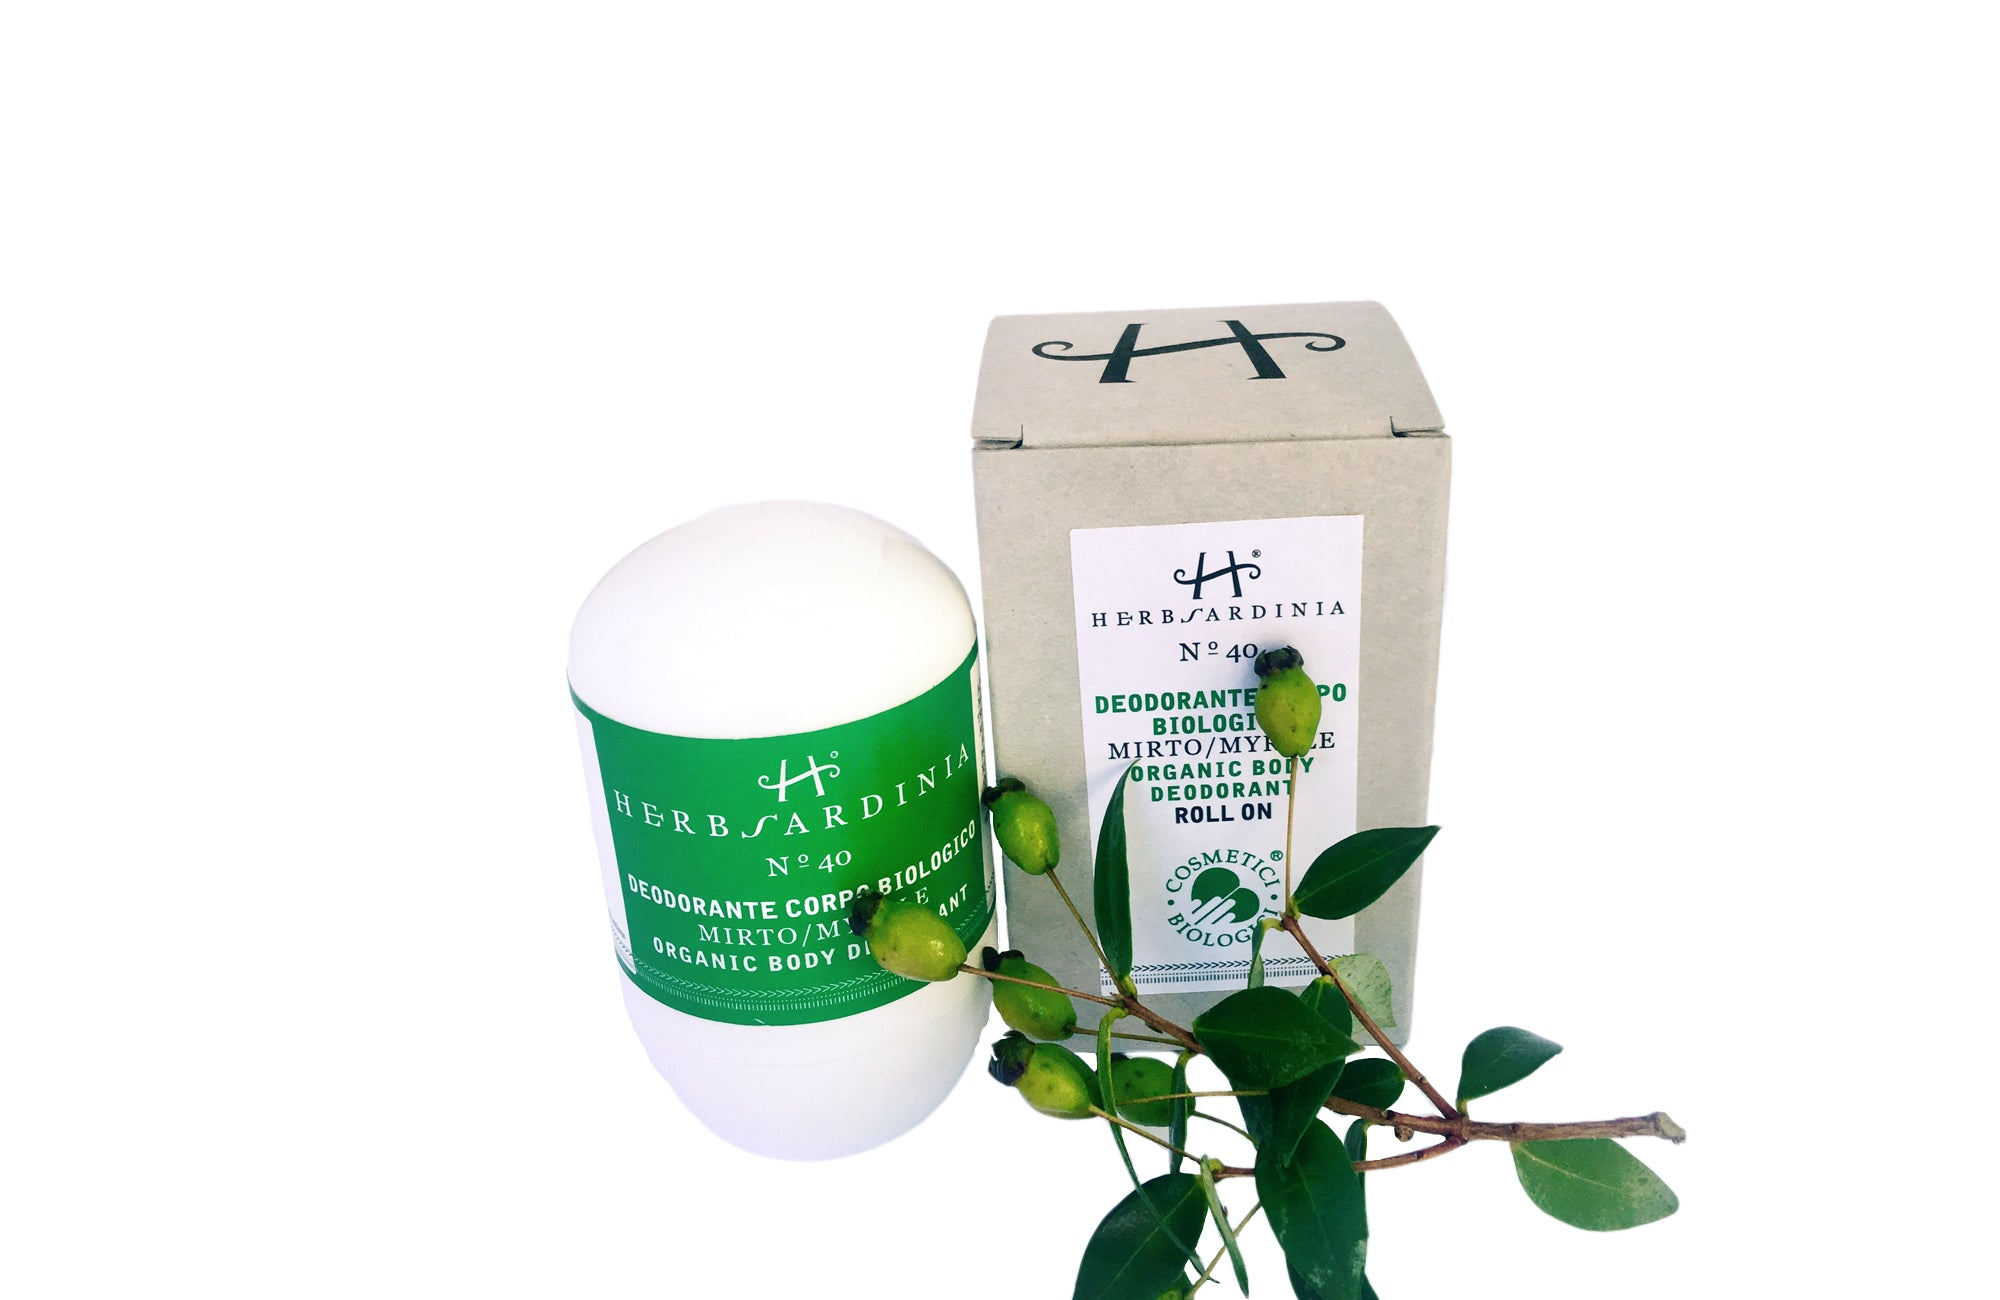 N°40 Myrtle Organic Body Deodorant Roll on